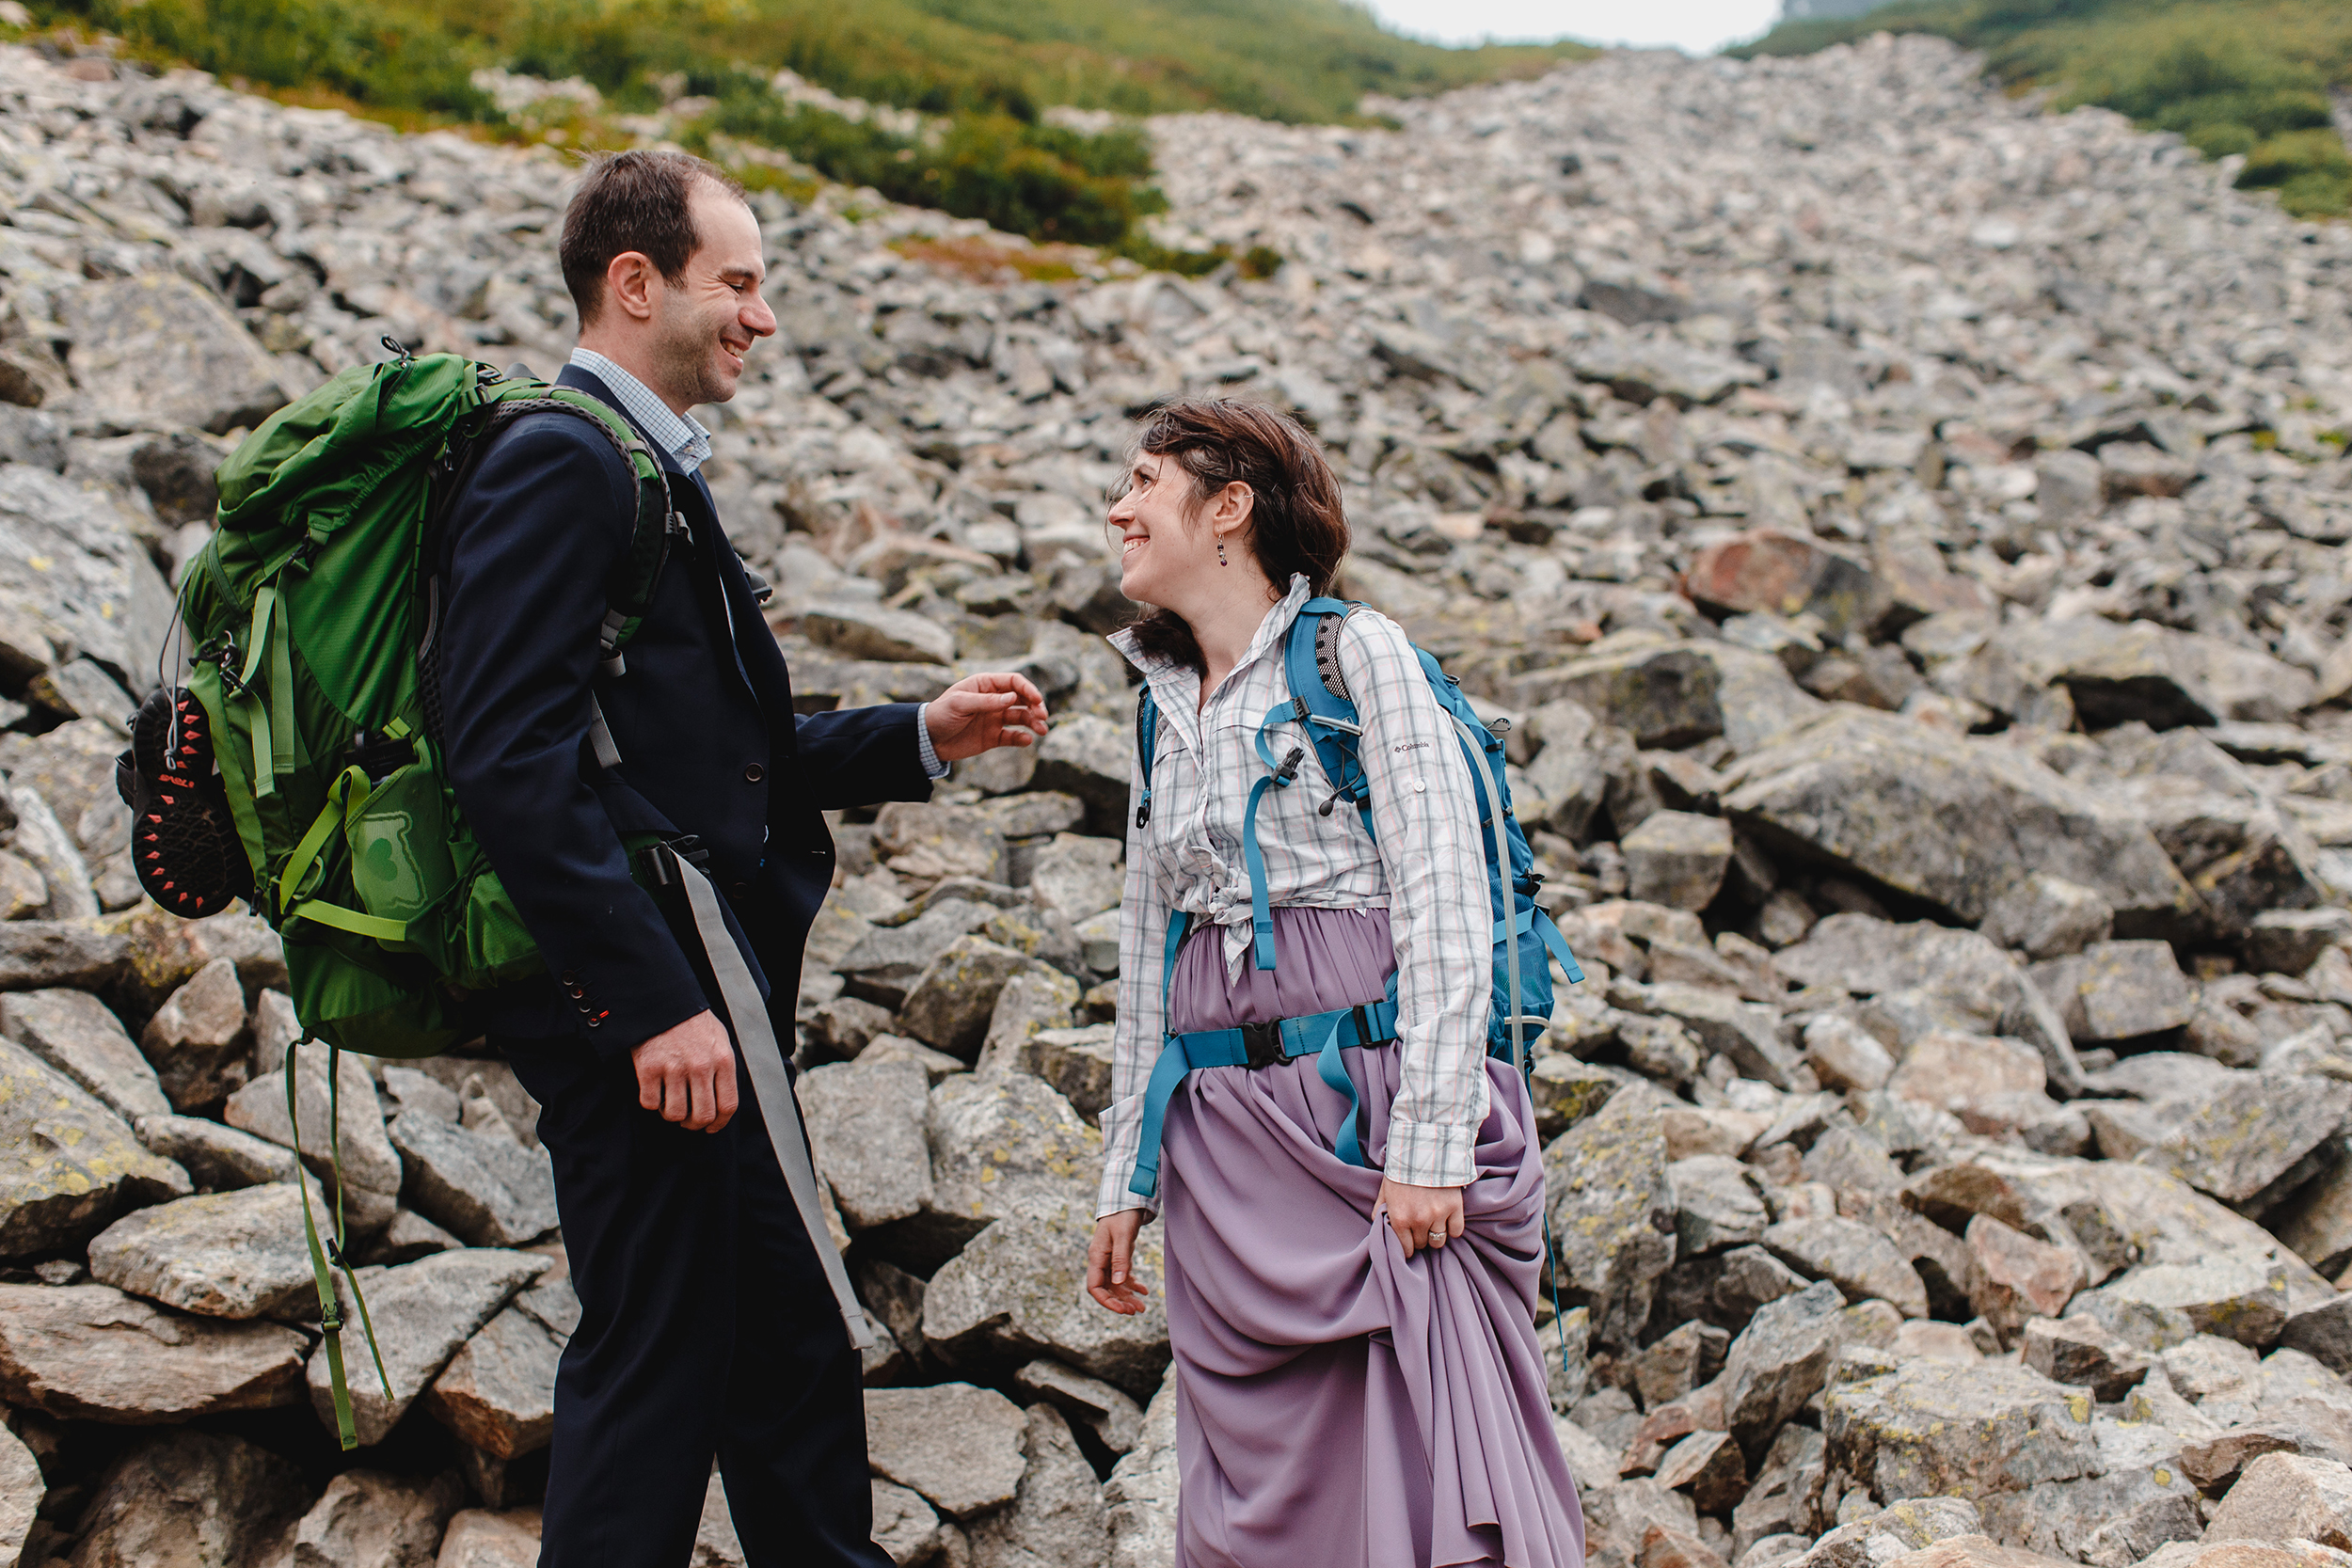 Hiking in a suit and dress